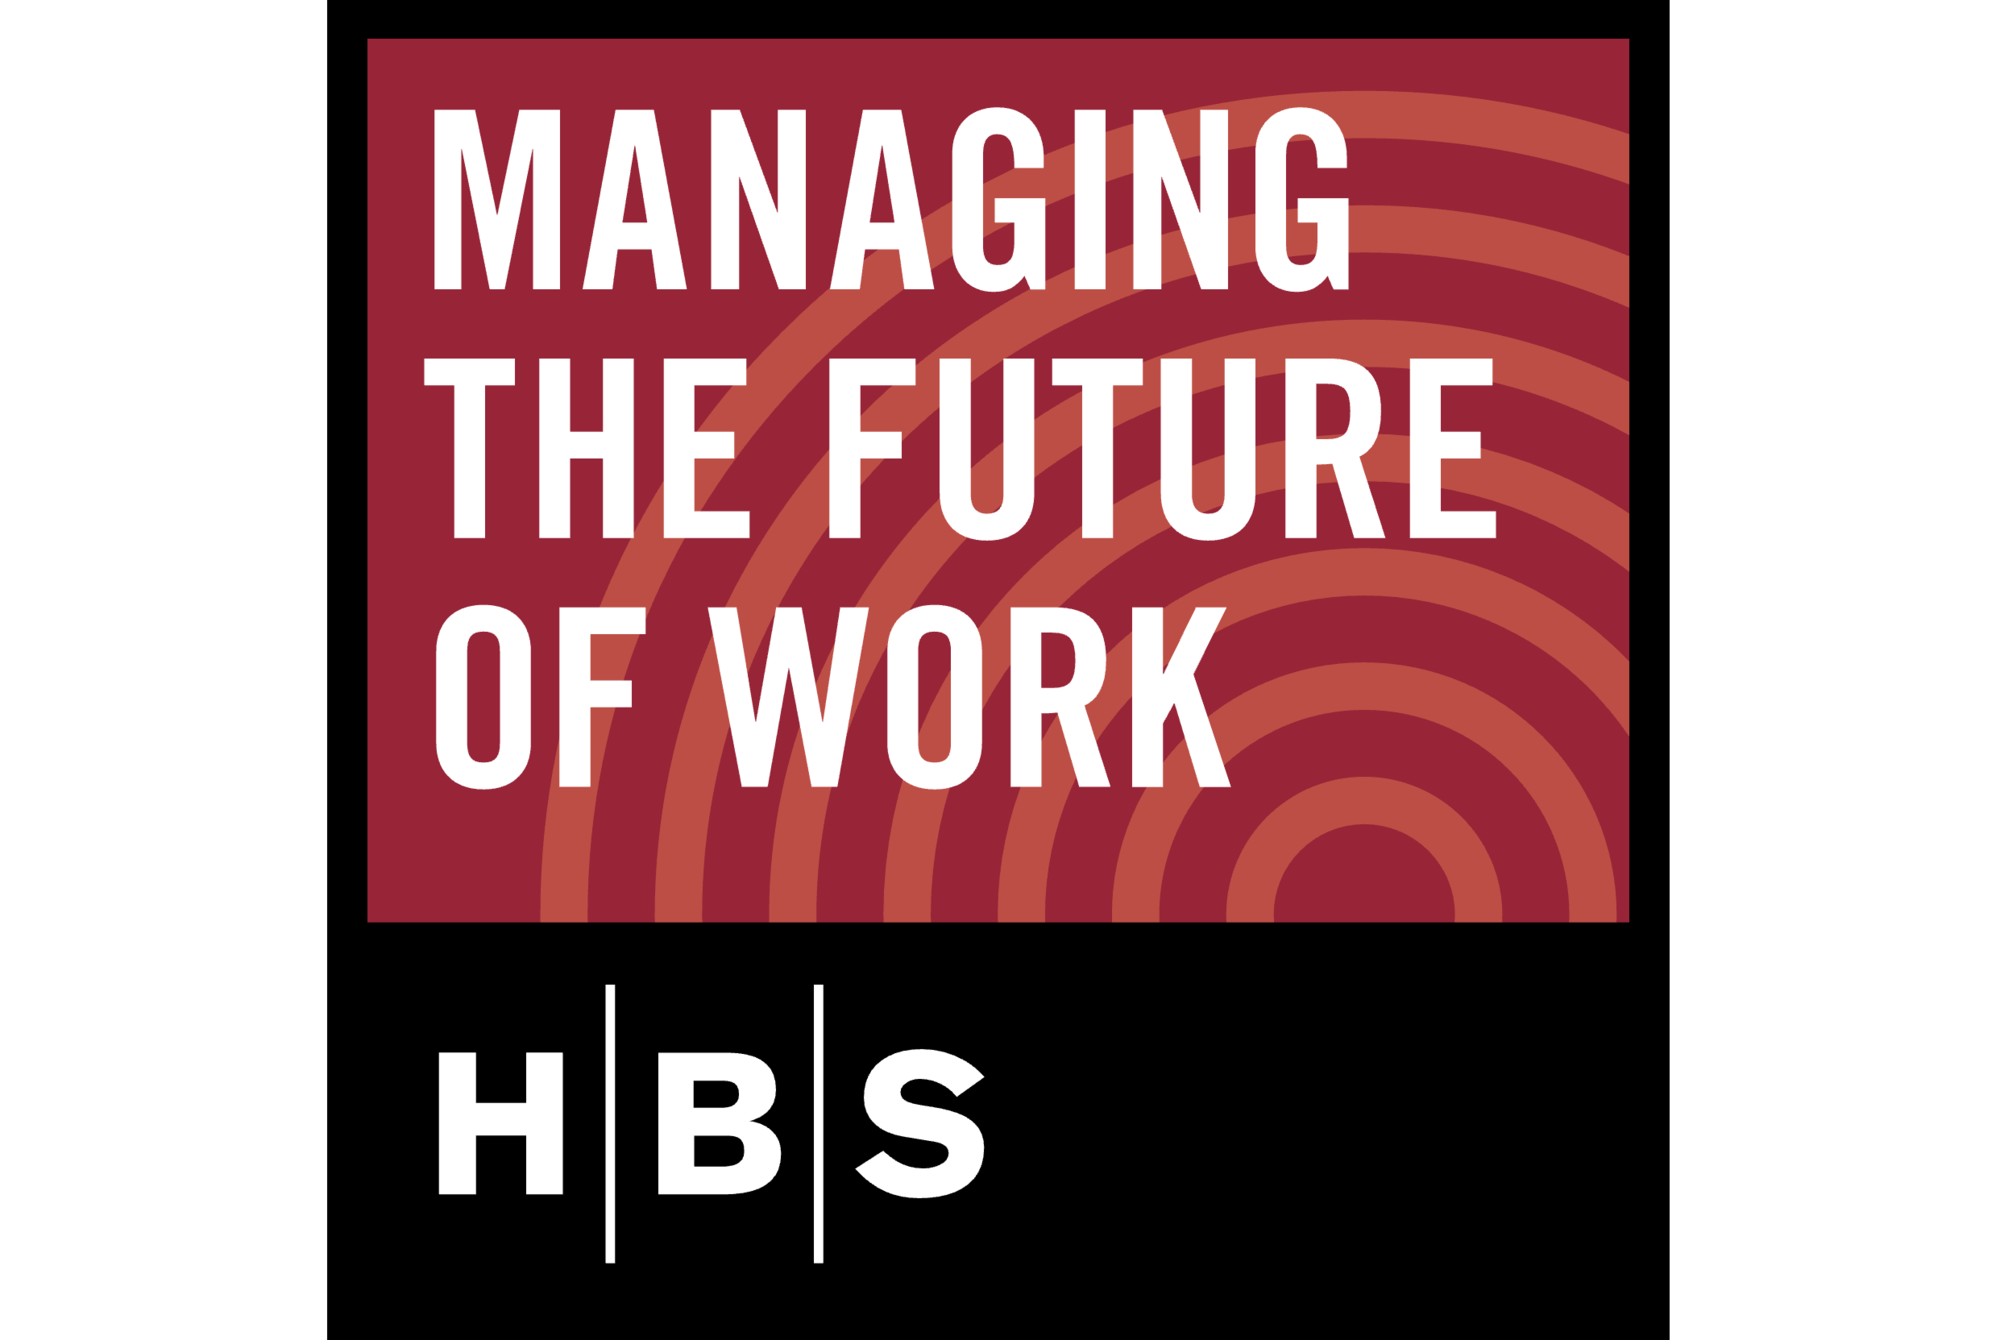 Managing the Future of Work podcast logo